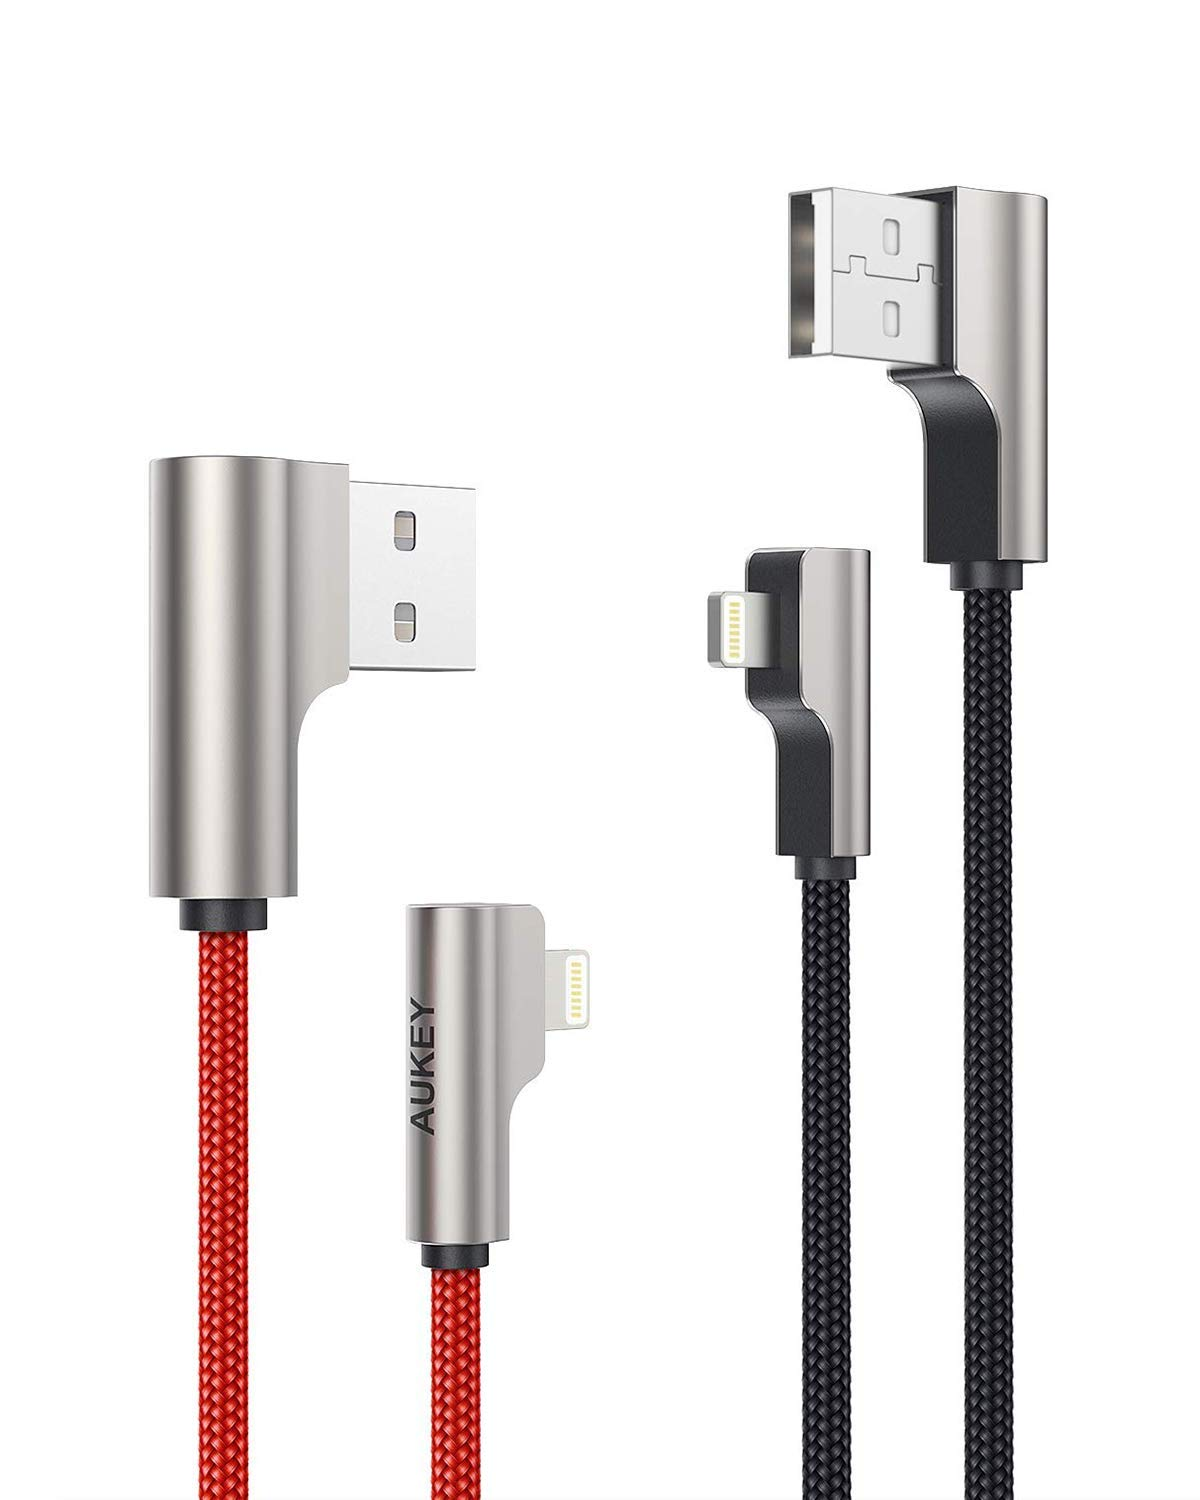 AUKEY Right Angle Lightning Cable 3.3ft (2 Pack) Nylon Braided [ Apple MFi Certified ] Ideal for Playing Games iPhone Charging Cable Compatible with iPhone 11 / X / 8, iPad and Other Apple Devices